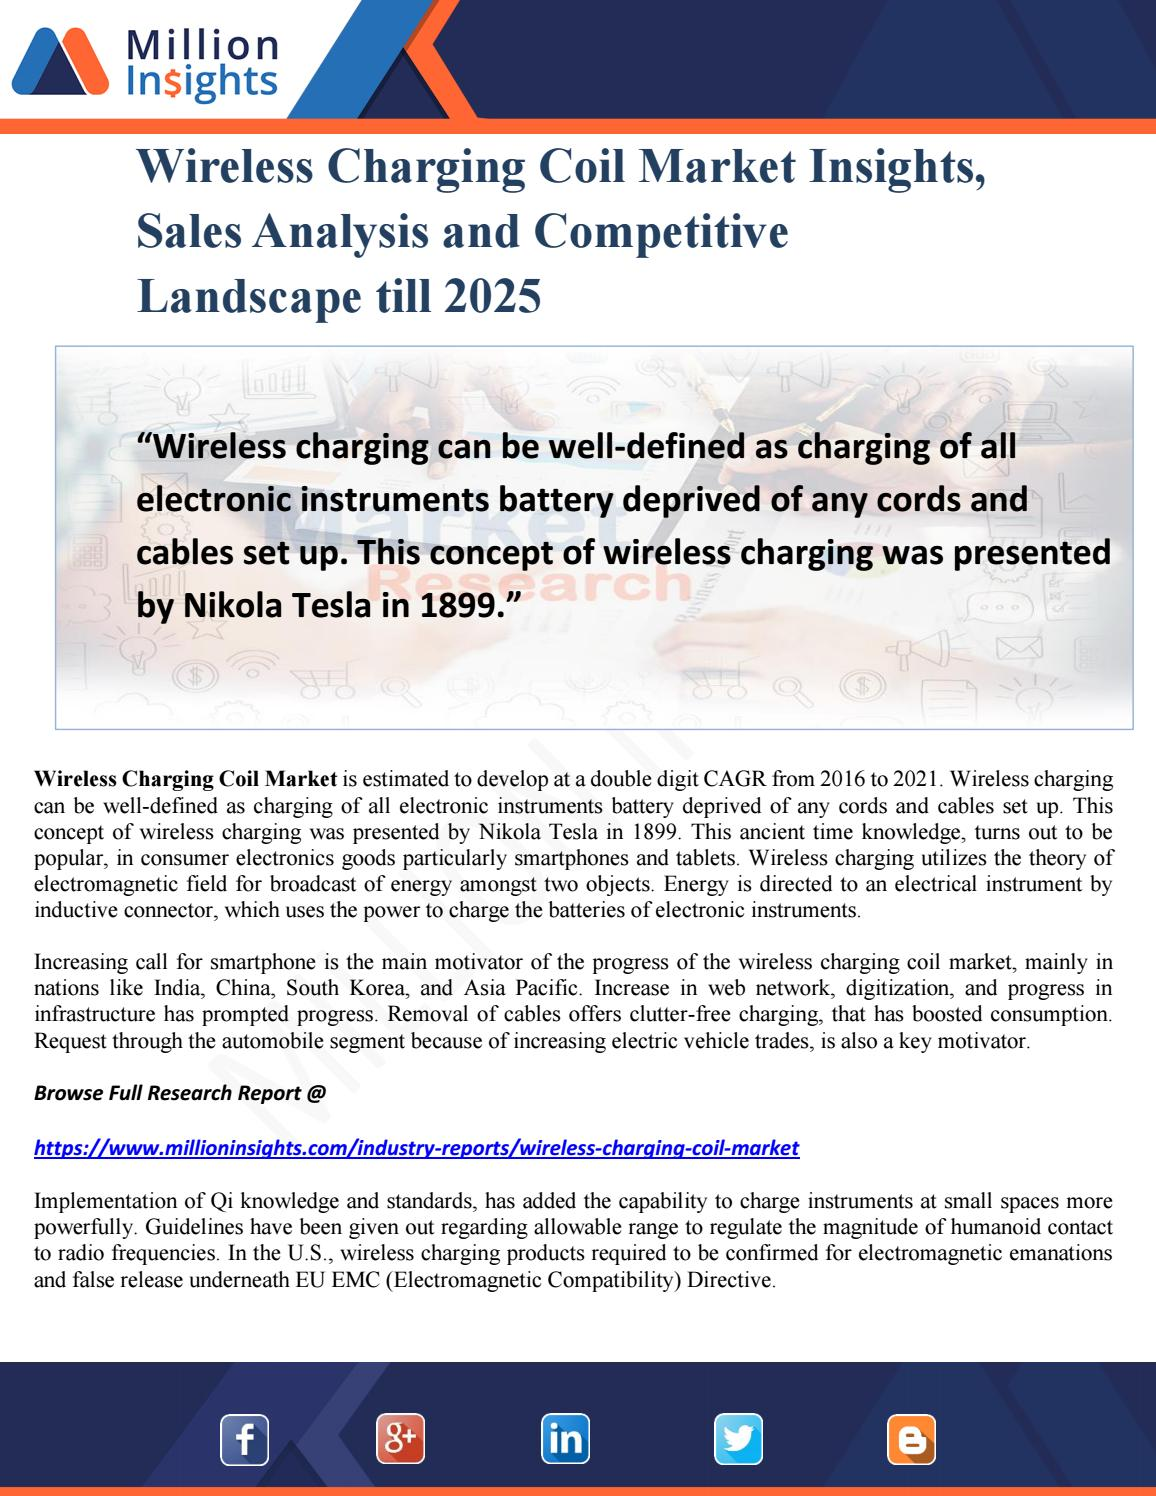 Wireless Charging Coil Market Insights, Sales Analysis and